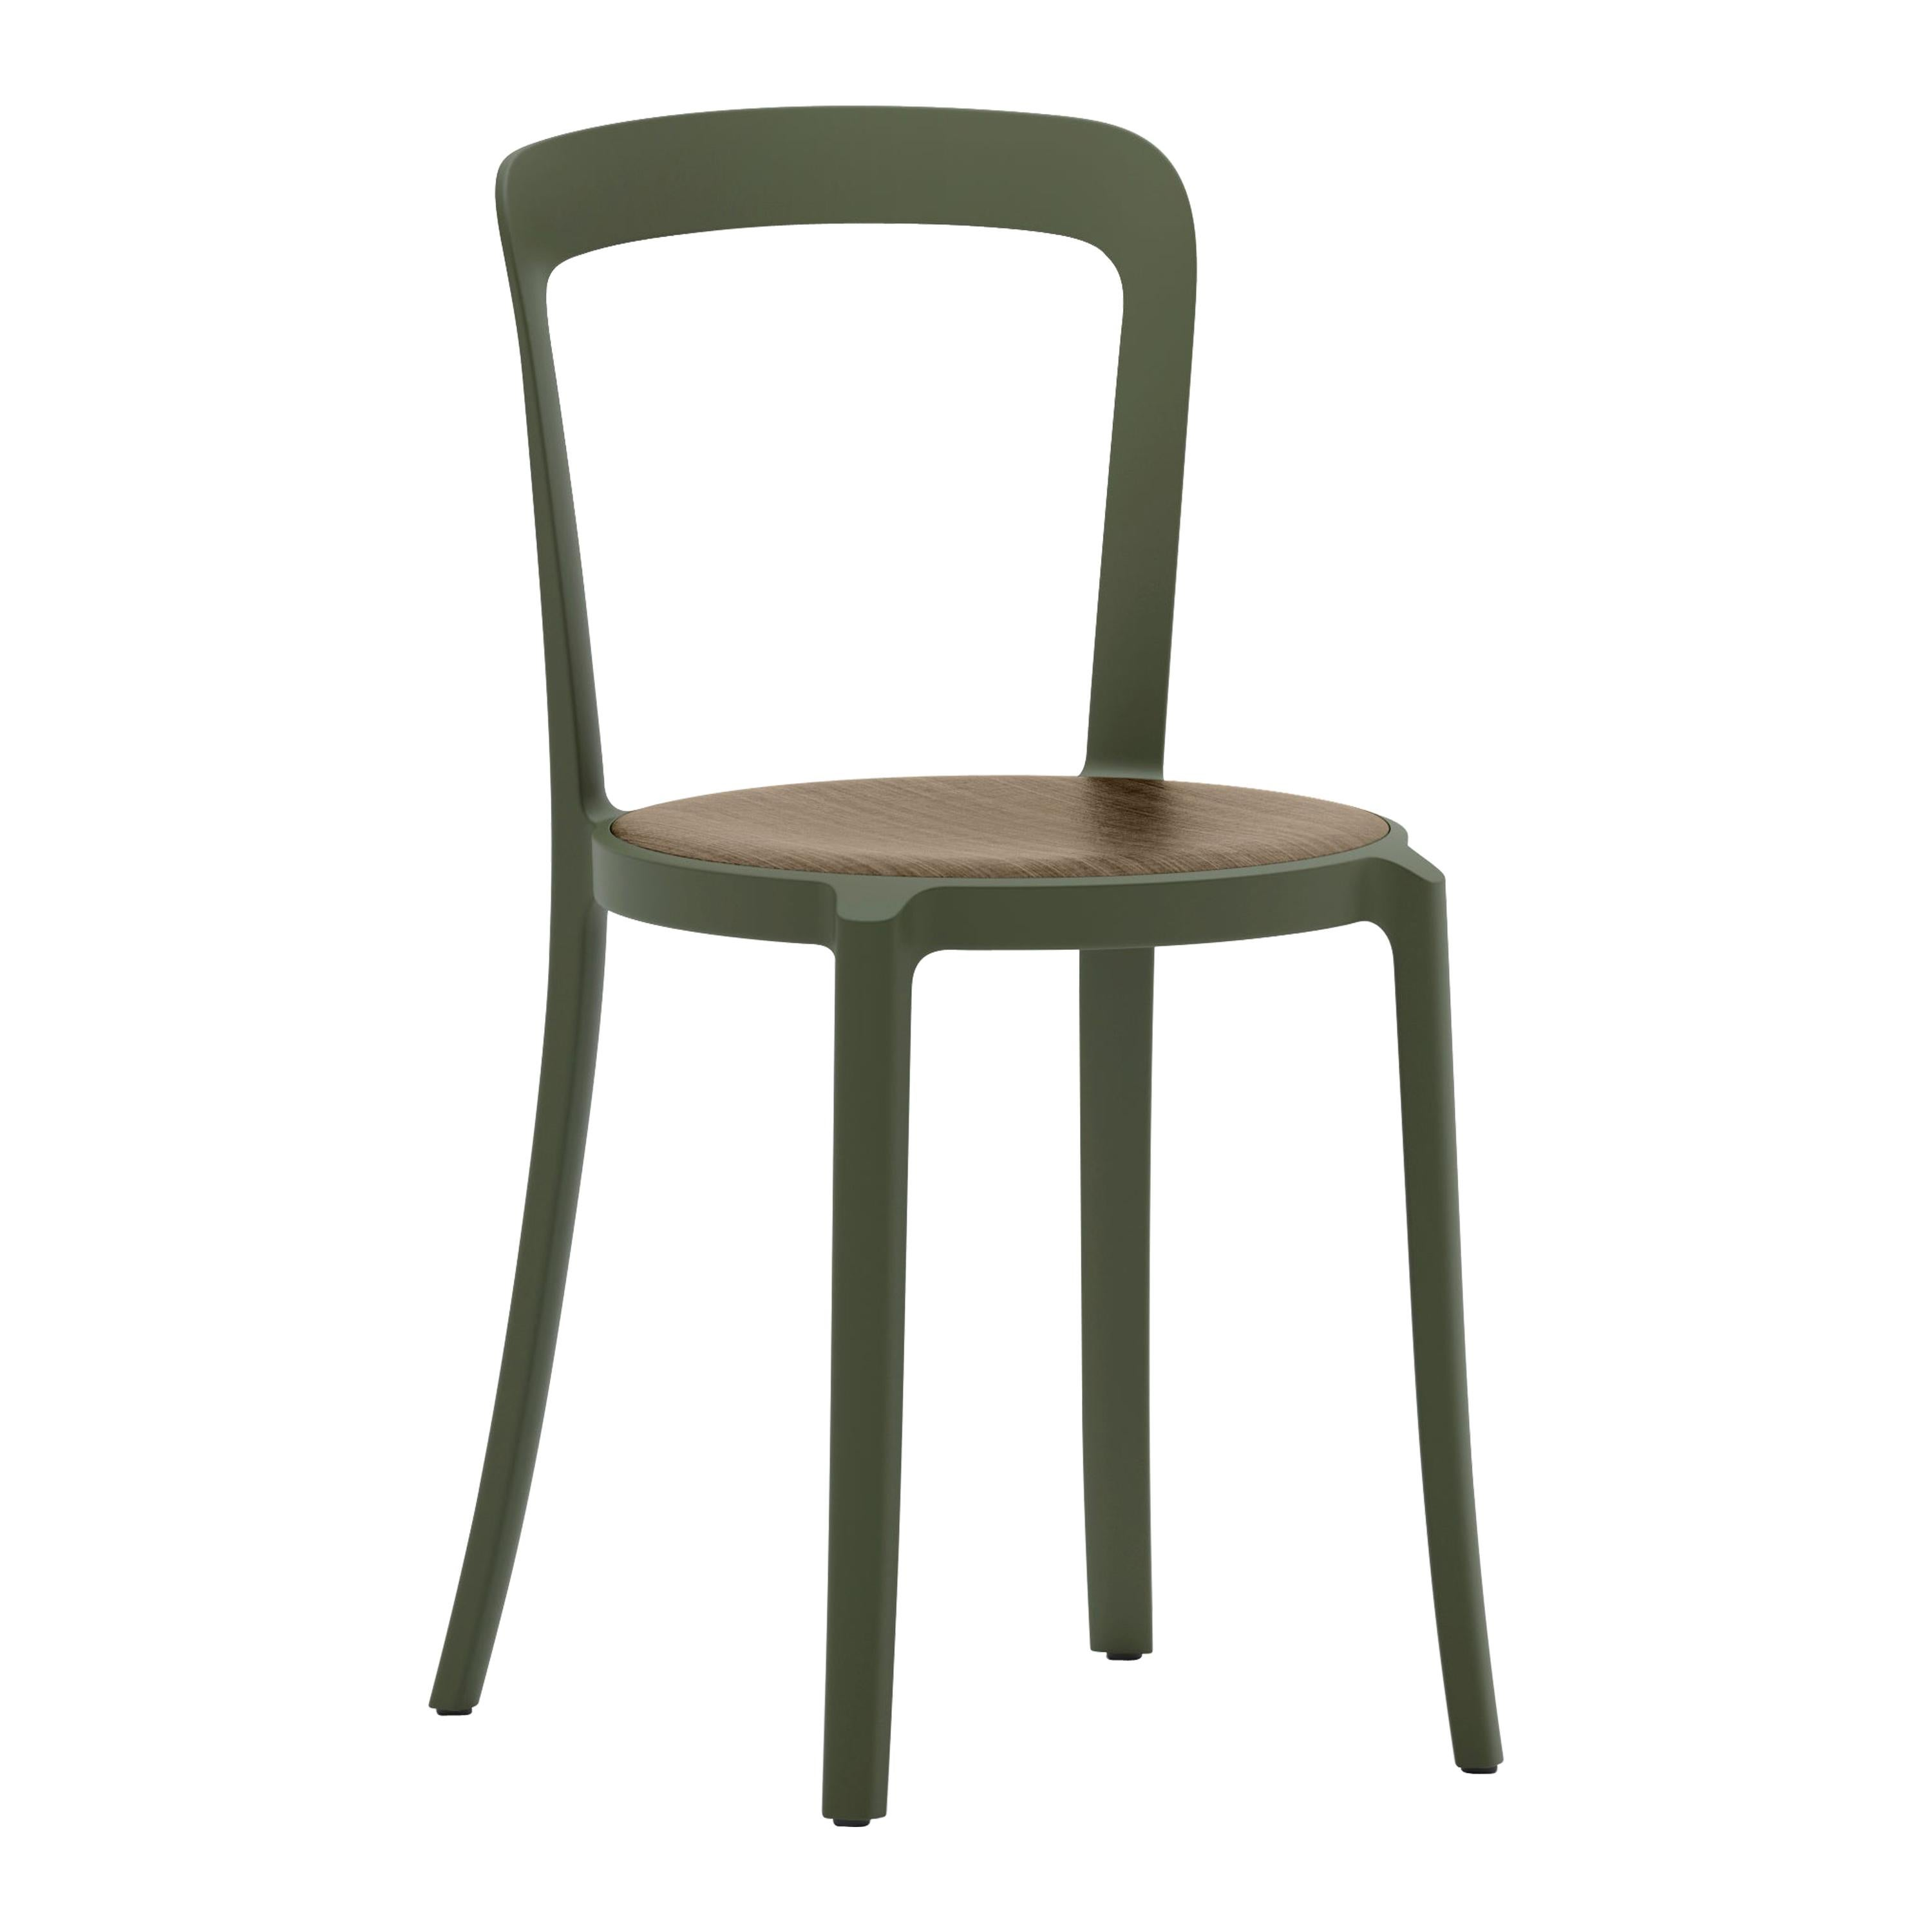 Emeco On & On Stacking Chair in Green with Walnut seat by Barber & Osgerby